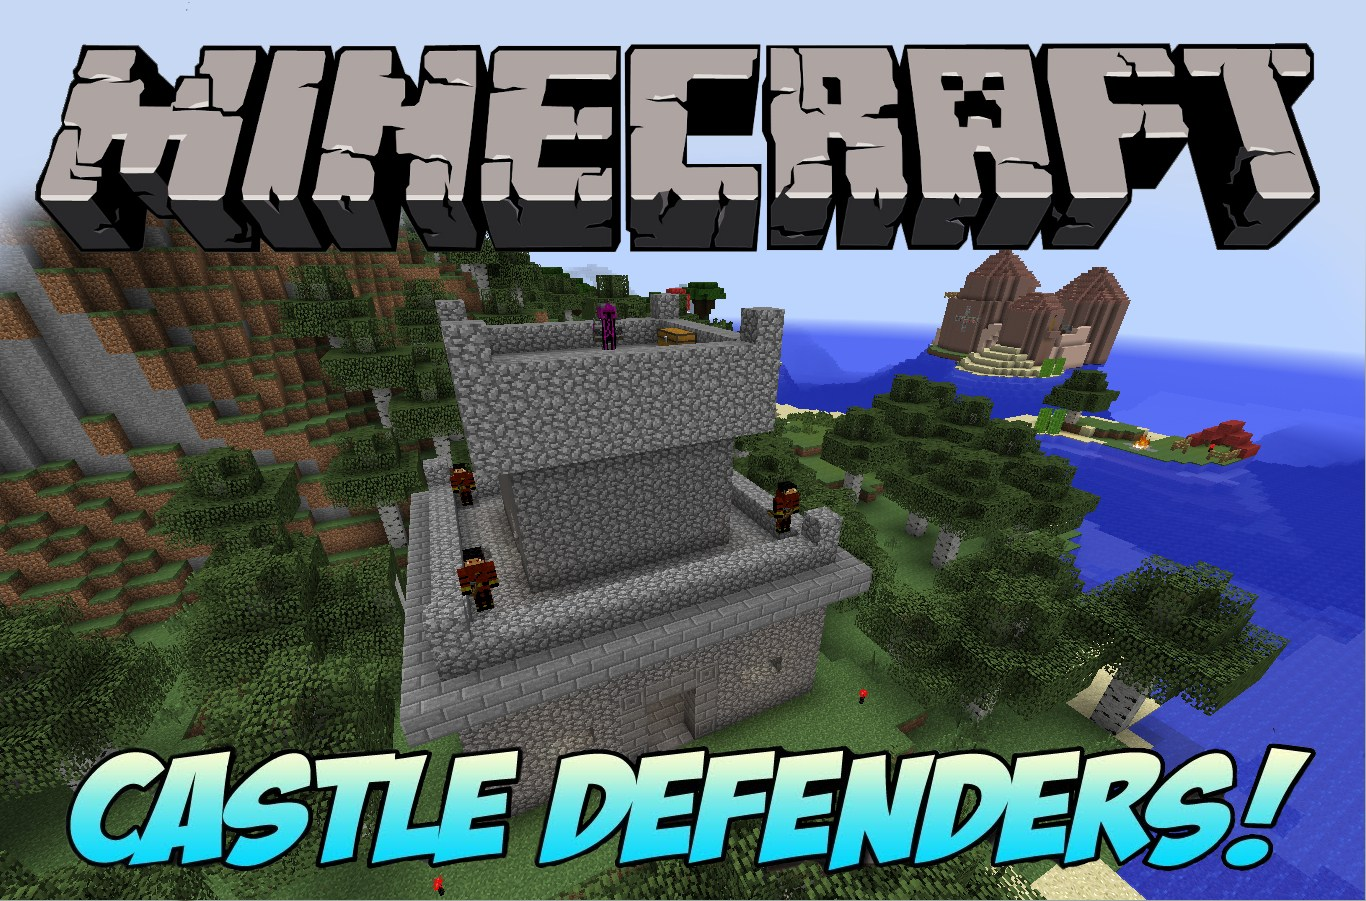 The Castle Defenders mod 1